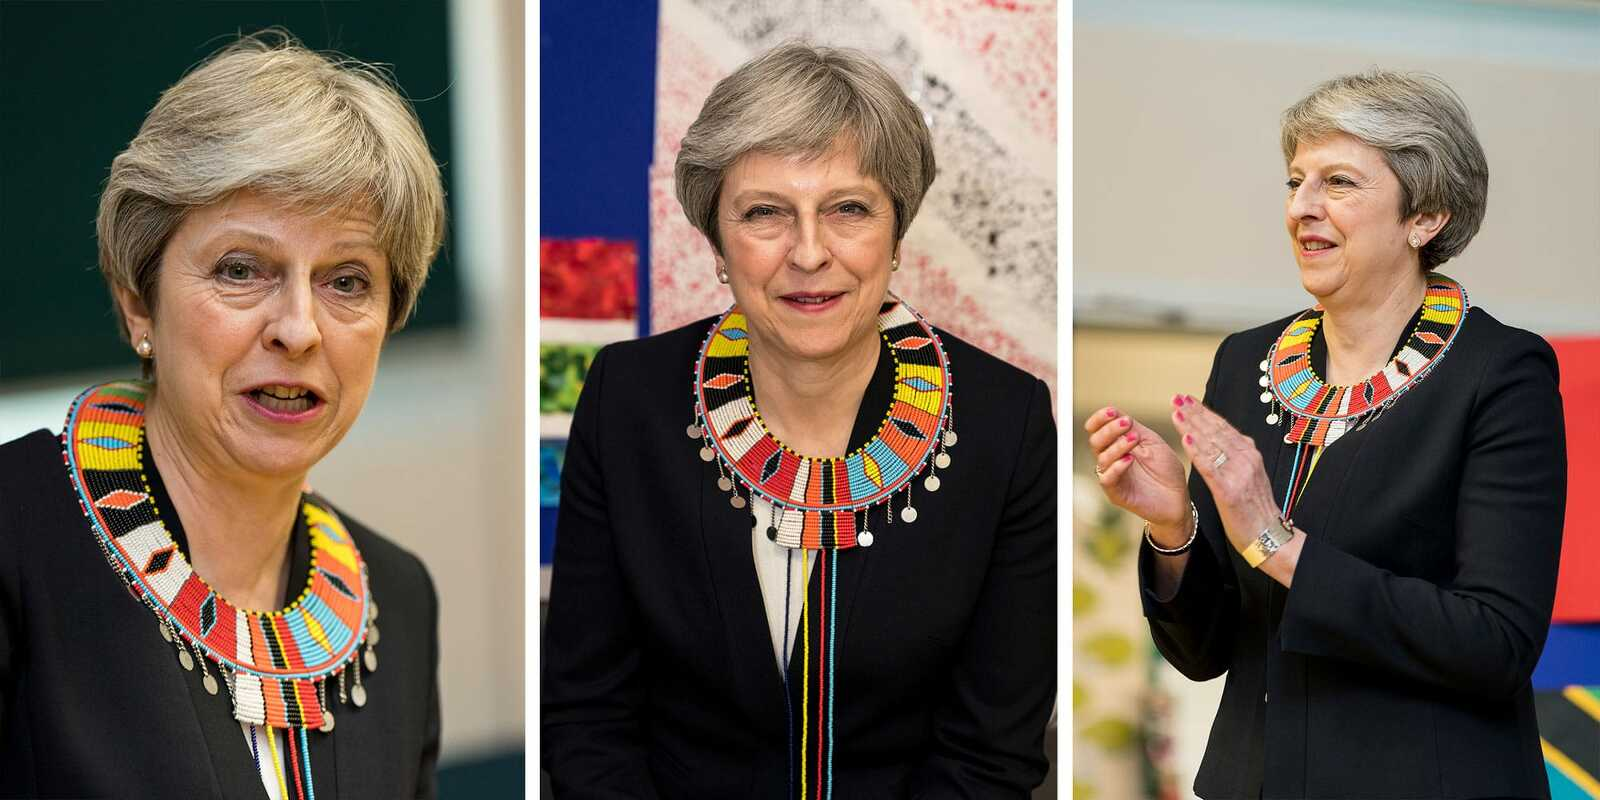 Corporate Shoot with Teresa May the Primeminister